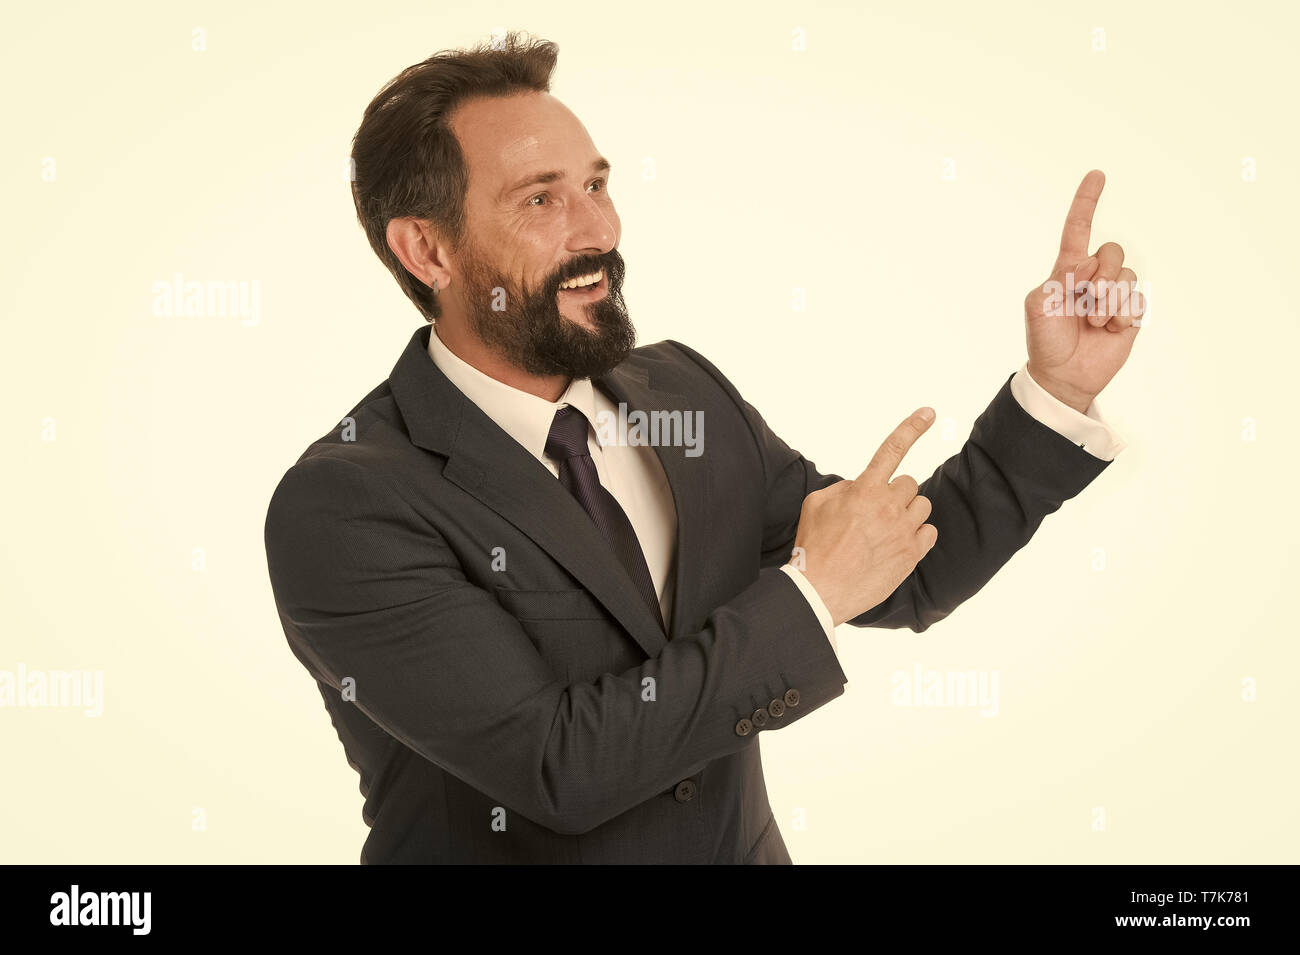 Pointing direction. Man pointing index fingers isolated on white. Man bearded mature in formal wear. Businessman or manager with beard and mustache shows direction. Look at that advertisement. - Stock Image